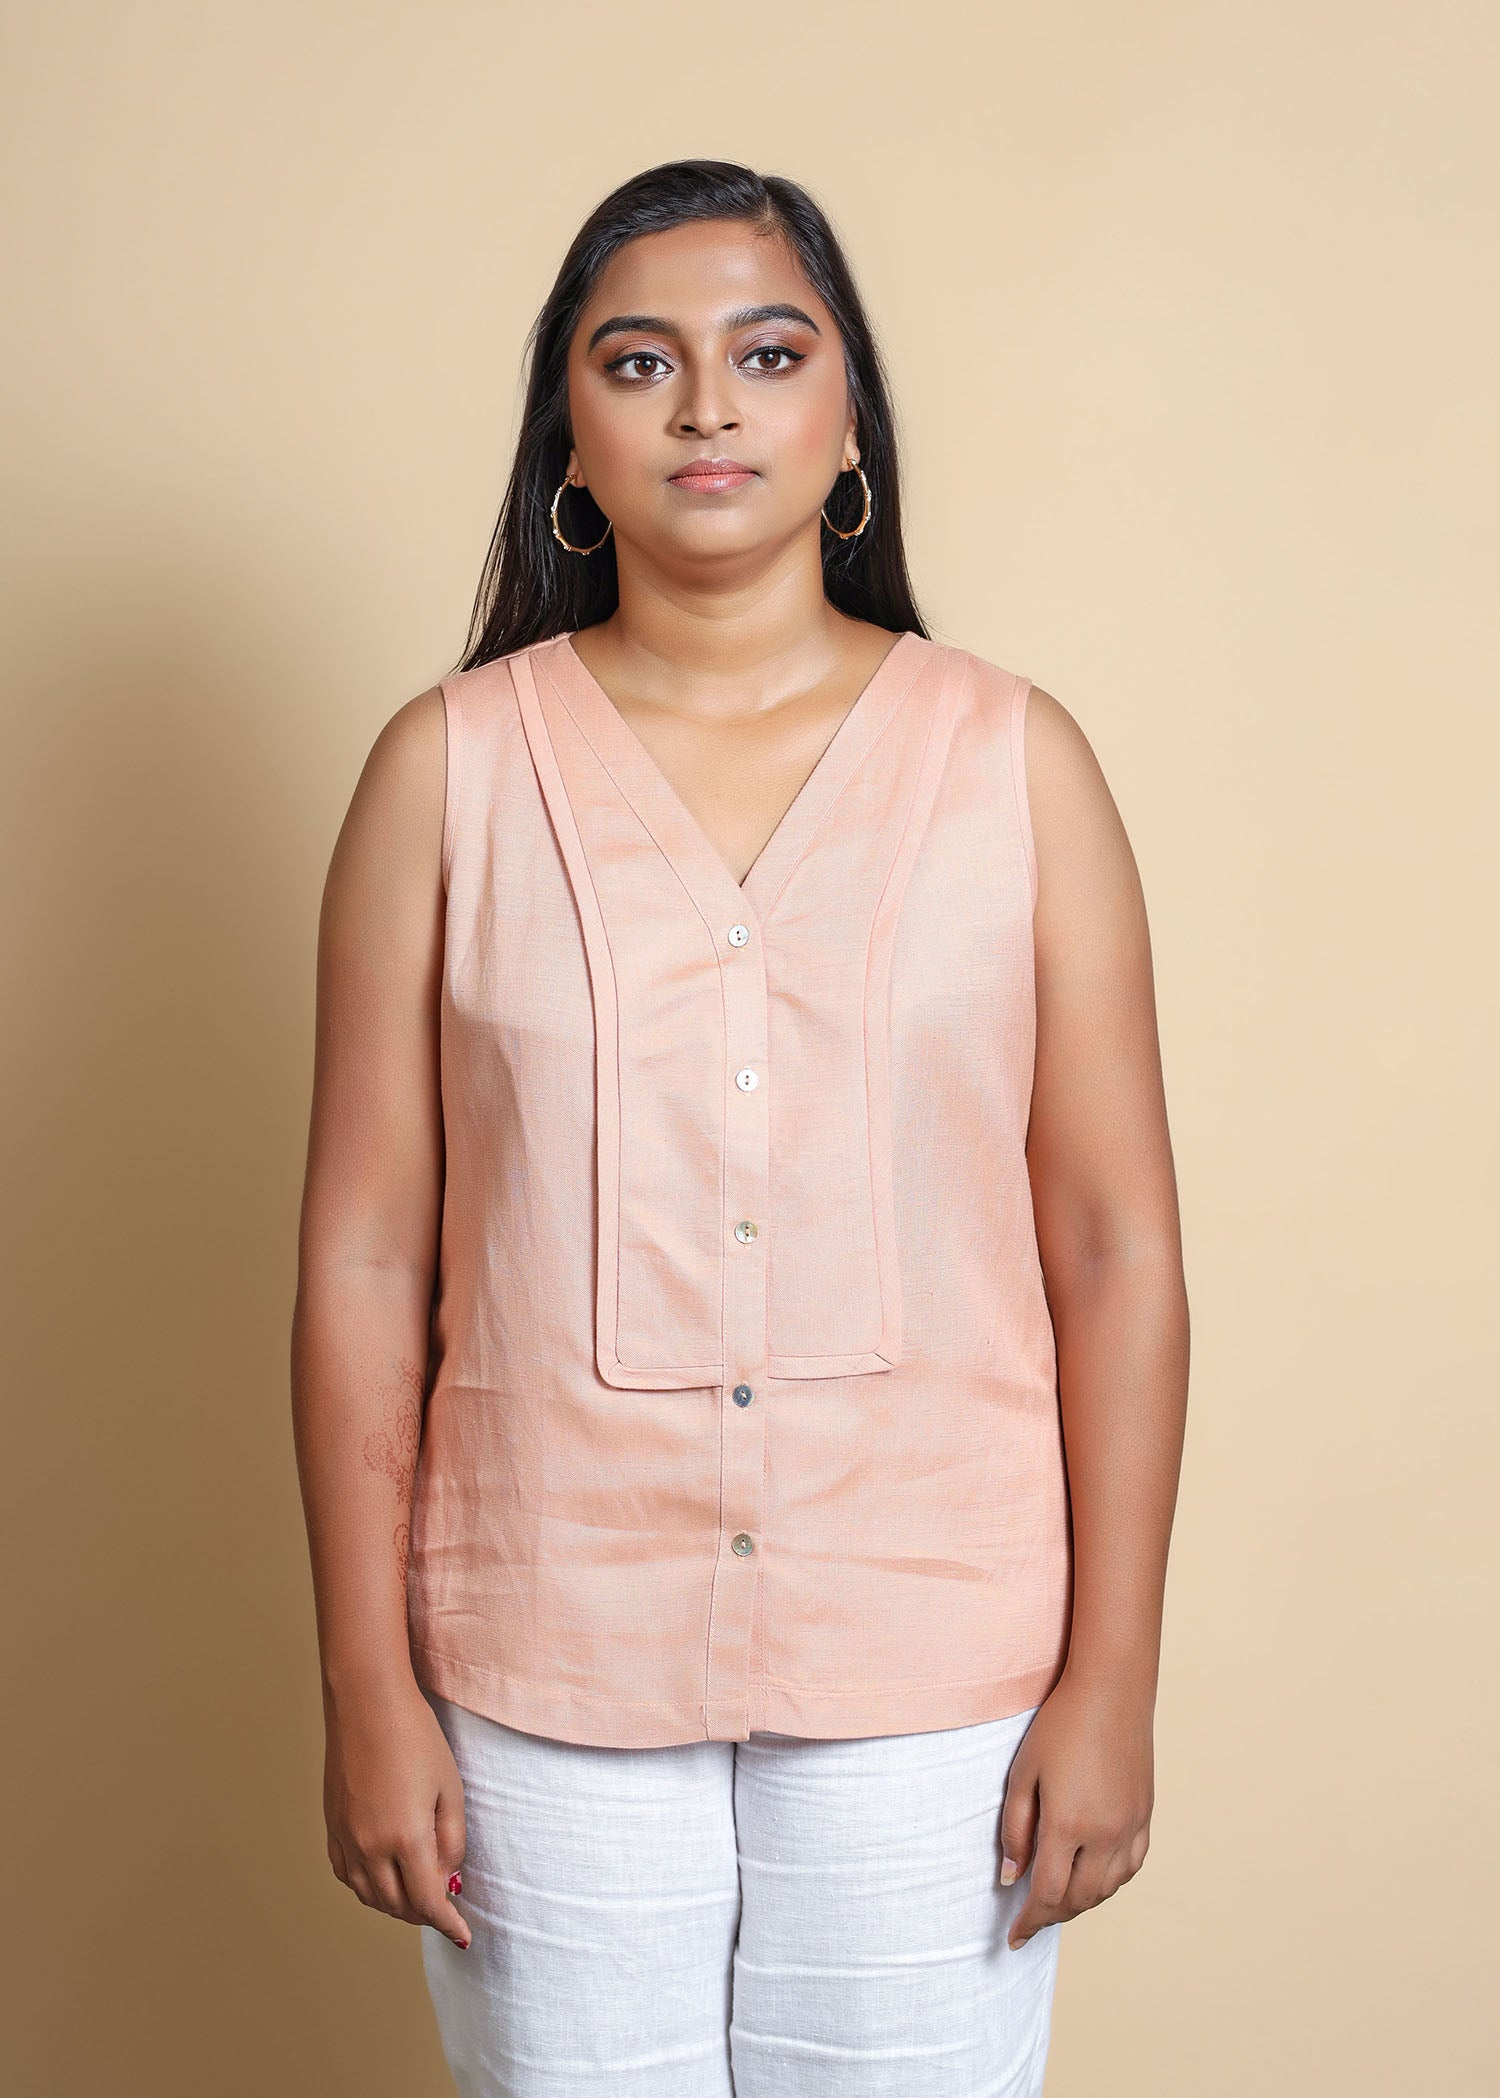 Sleeveless Top With Elongated Yoke